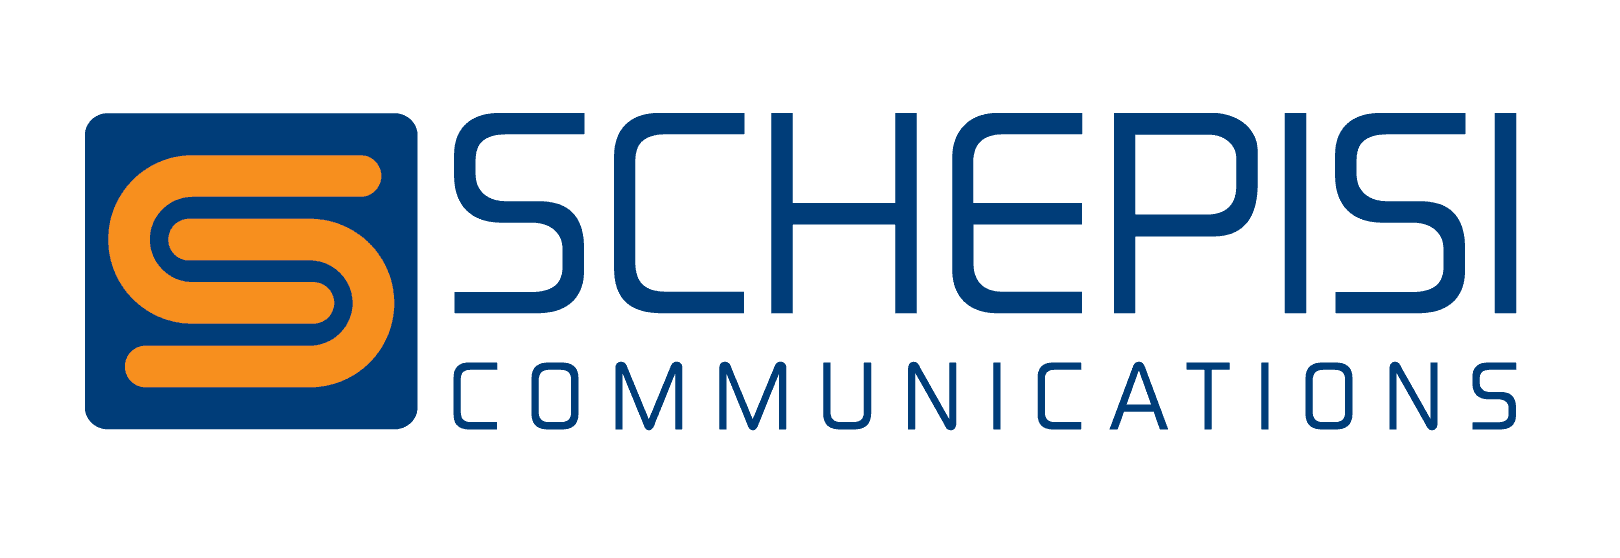 Incident: Telstra service provider Schepisi Communications hit by cyber attack as hackers claim SIM card information stolen | The Australian - Australian Information Security Awareness and Advisory